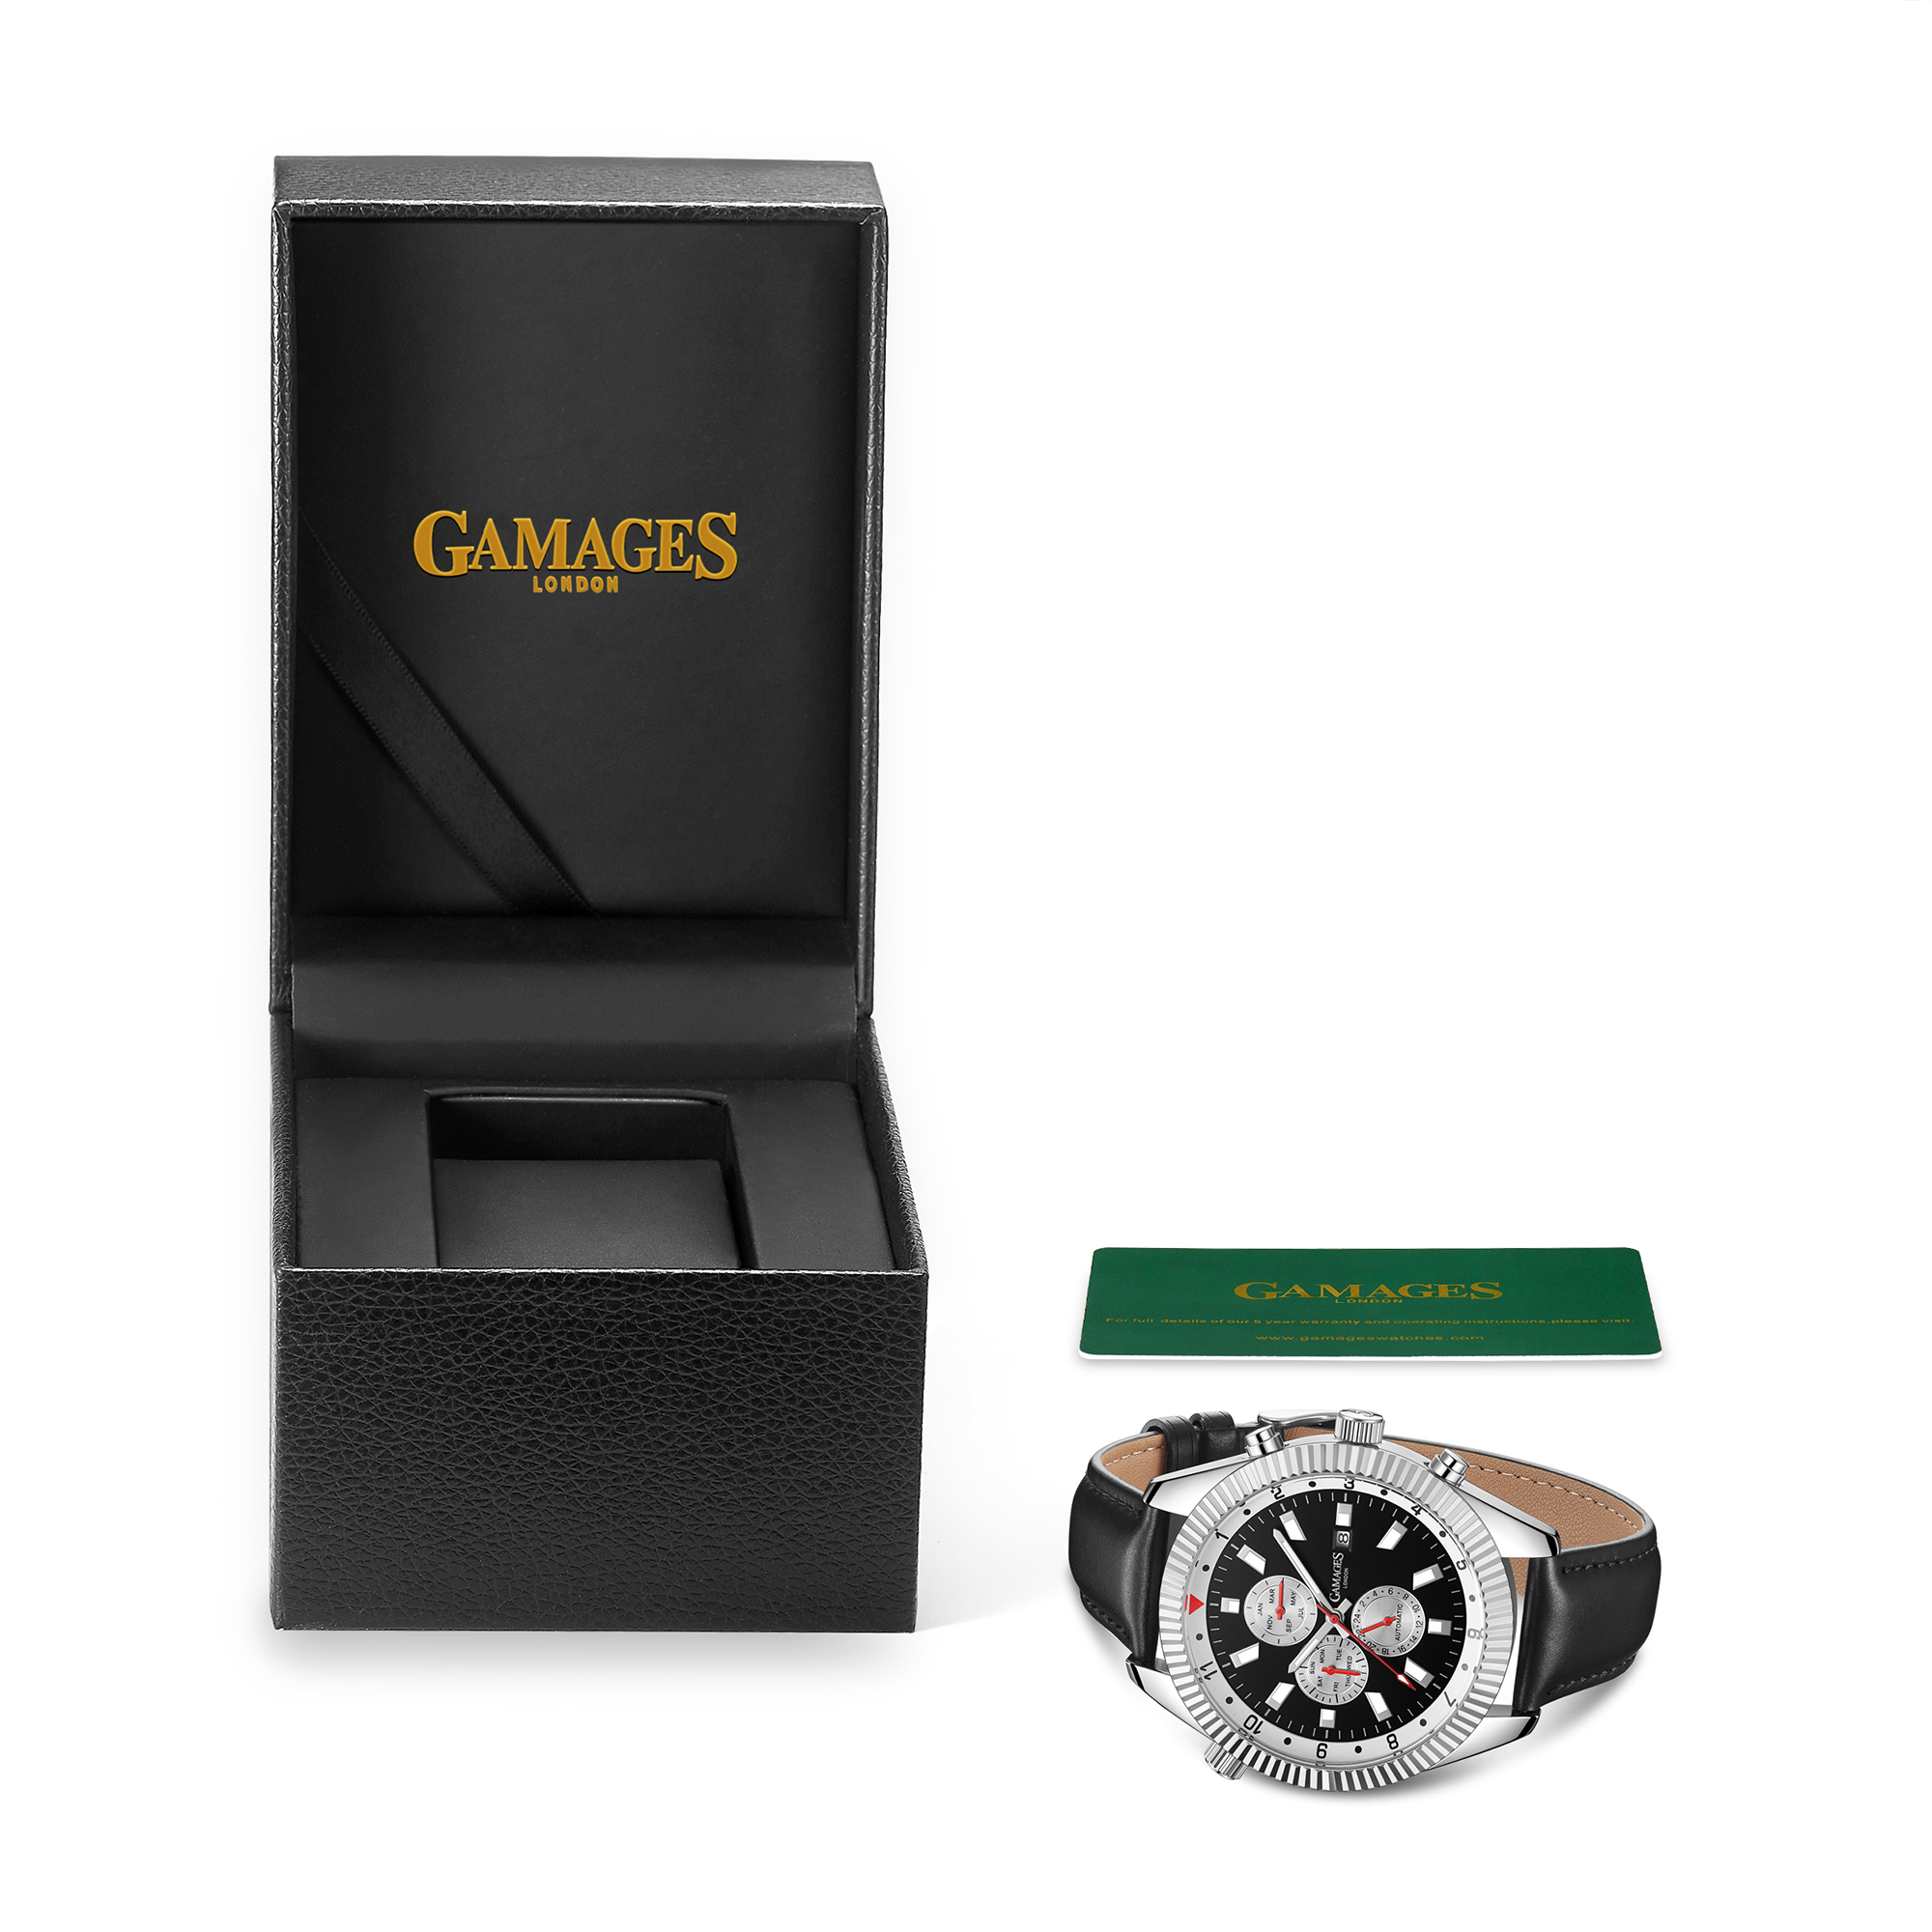 Ltd Edition Hand Assembled GAMAGES Hour Rotator Automatic Steel – 5 Year Warranty & Free Delivery - Image 2 of 5